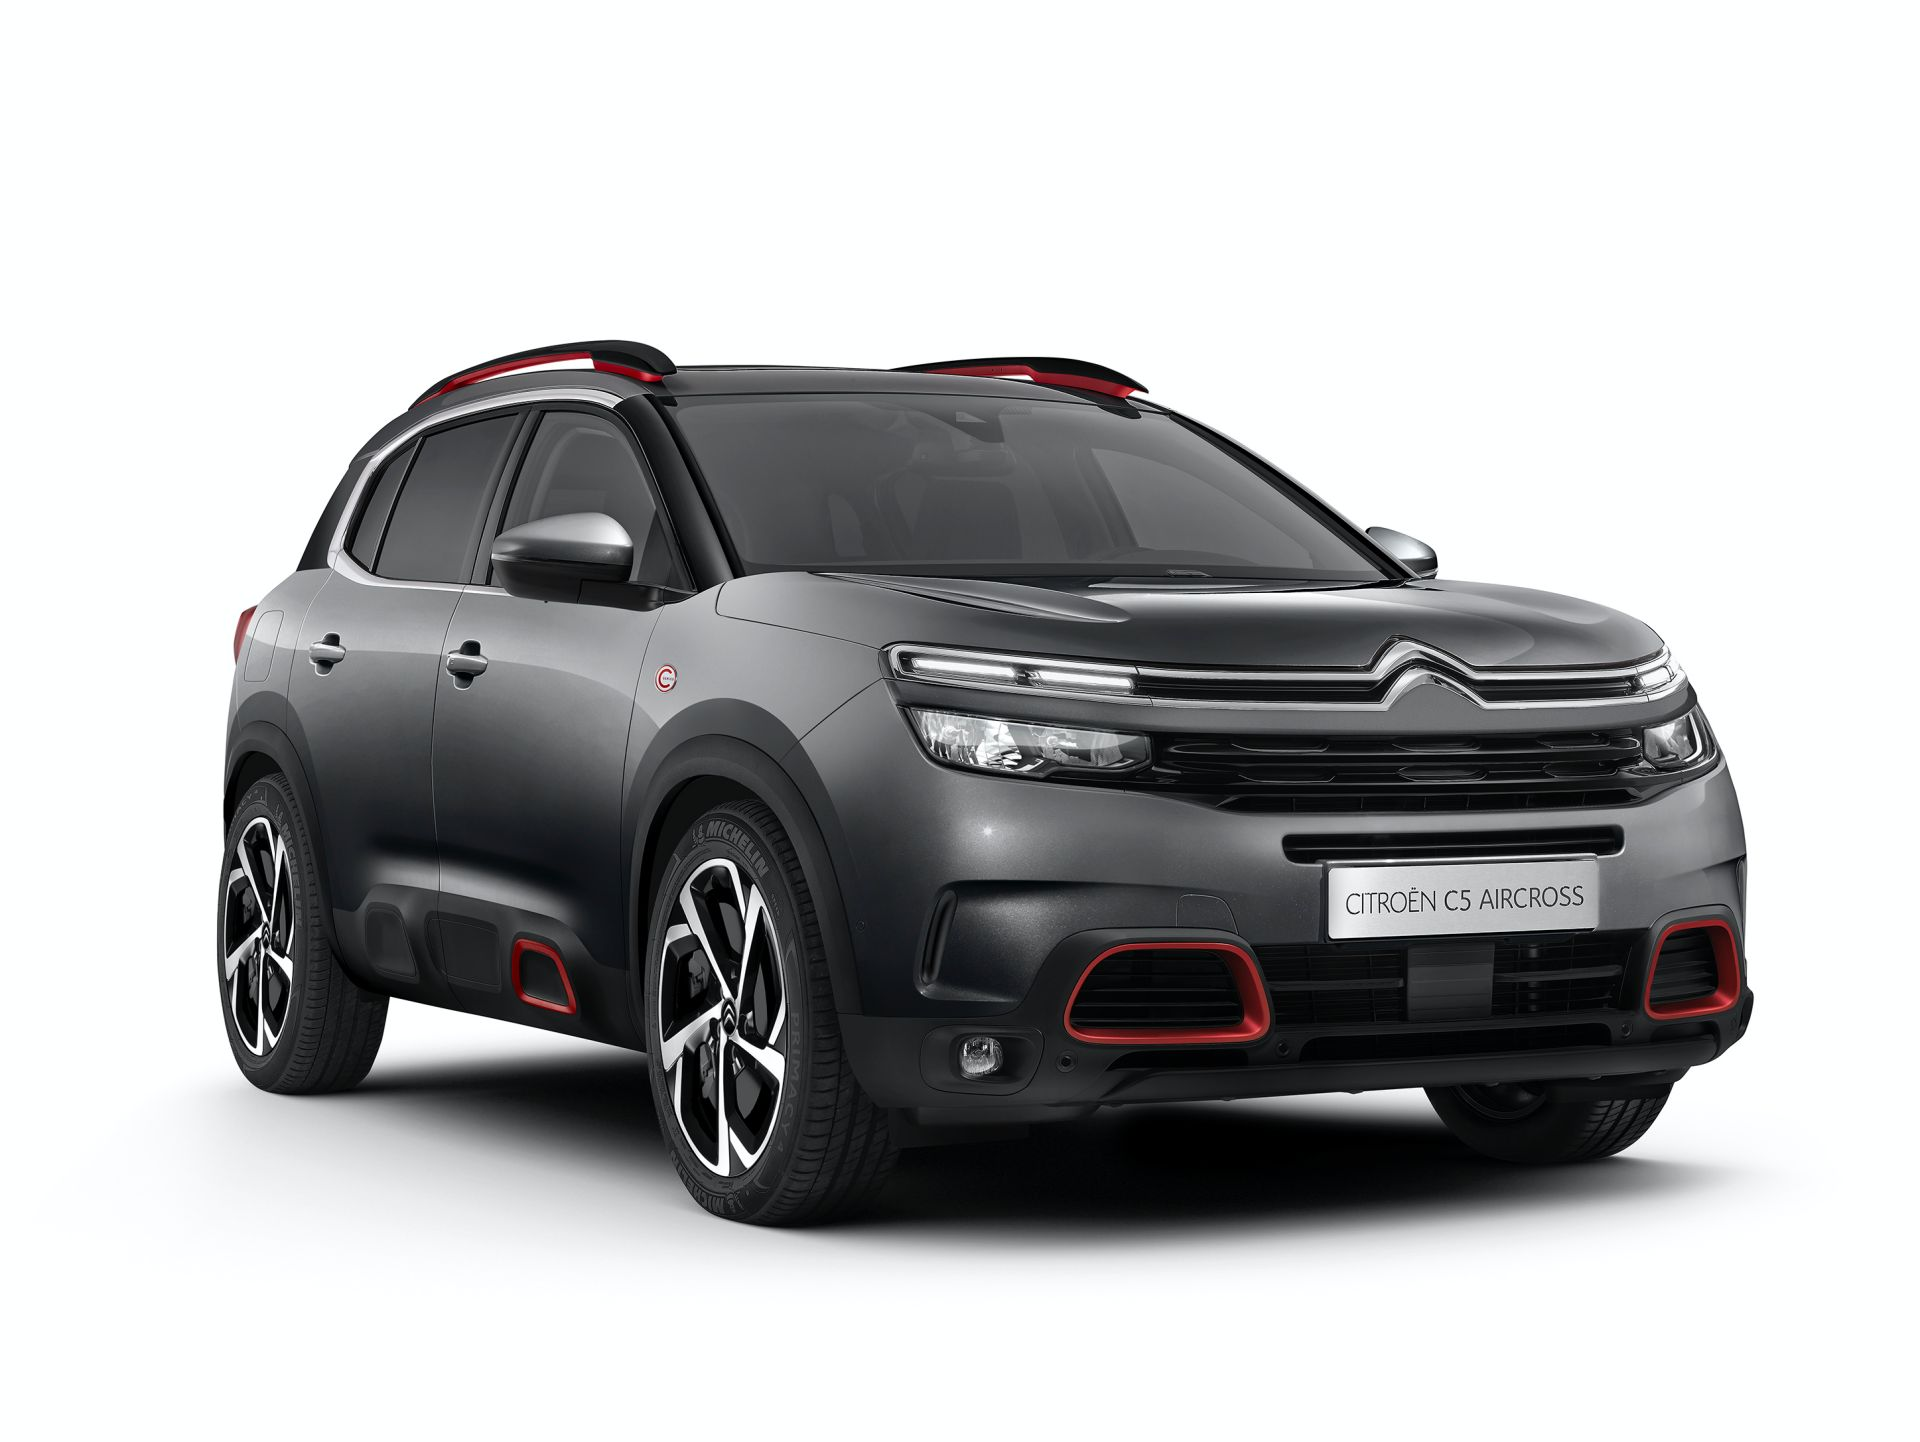 2020-Citroen-C5-Aircross-C-Series-5